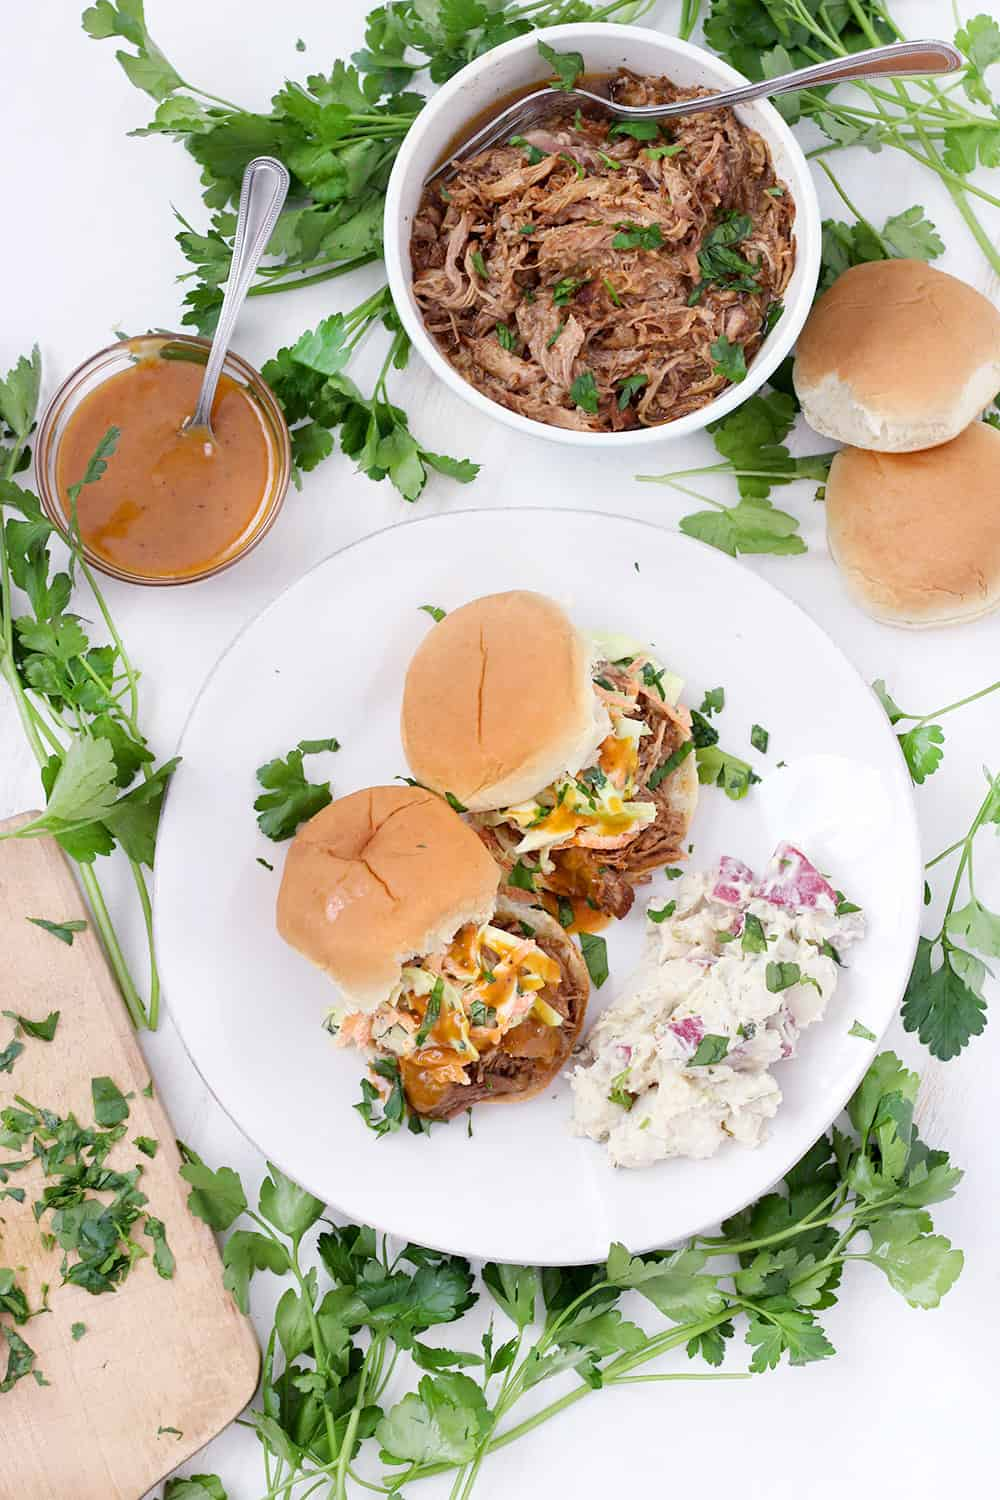 This Instant Pot Pulled Pork is a quick and easy recipe to feed a crowd! I love it served on slider buns with coleslaw or on tortillas with cilantro and onion. It's inexpensive, and the leftovers freeze beautifully.